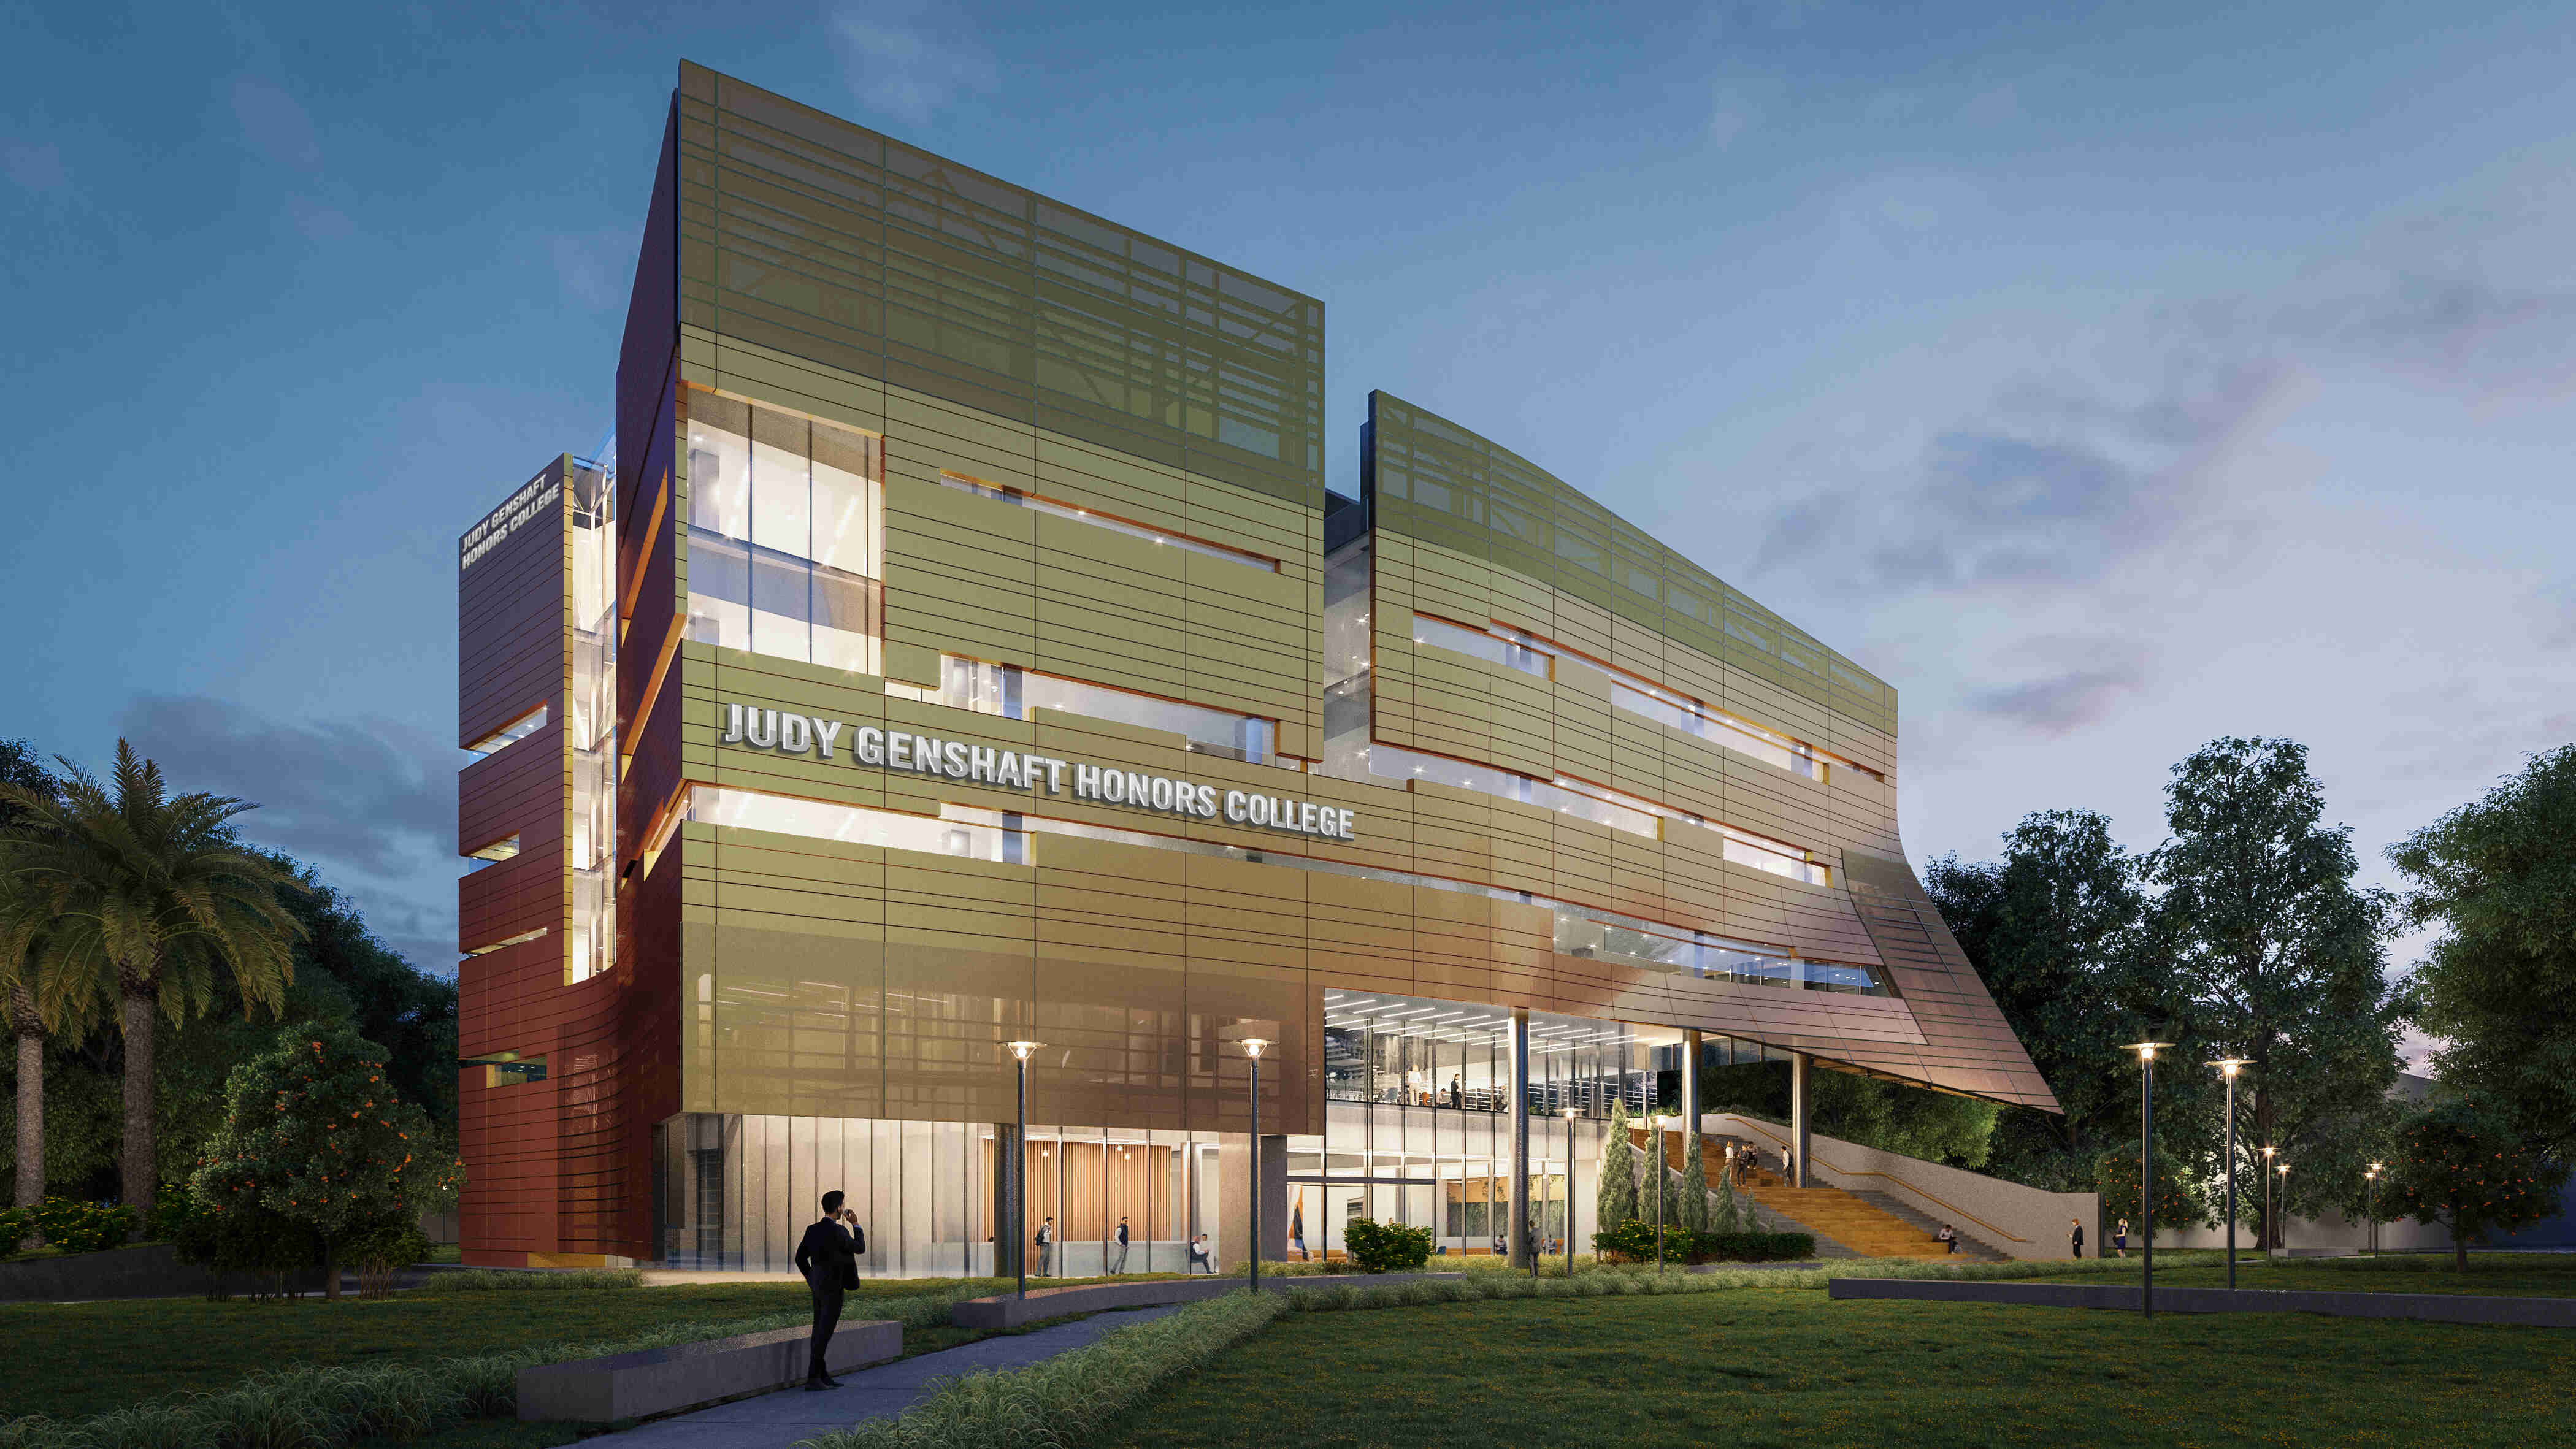 Construction begins on the new Judy Genshaft Honors College building.